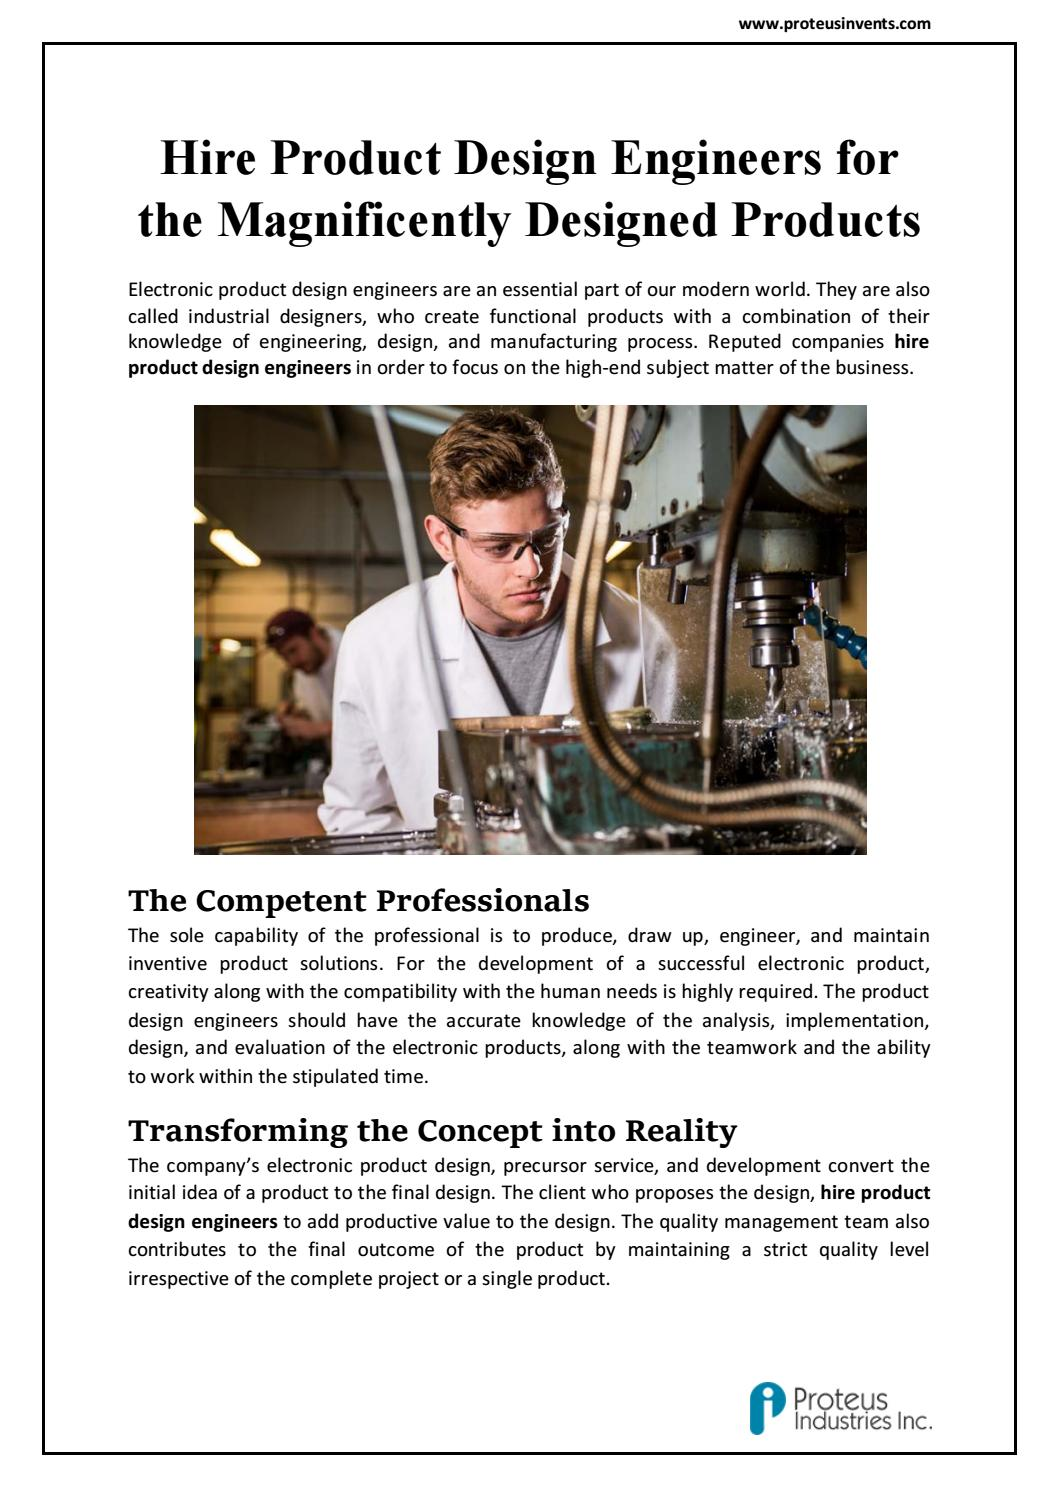 Hire Product Design Engineers for the Magnificently Designed Products